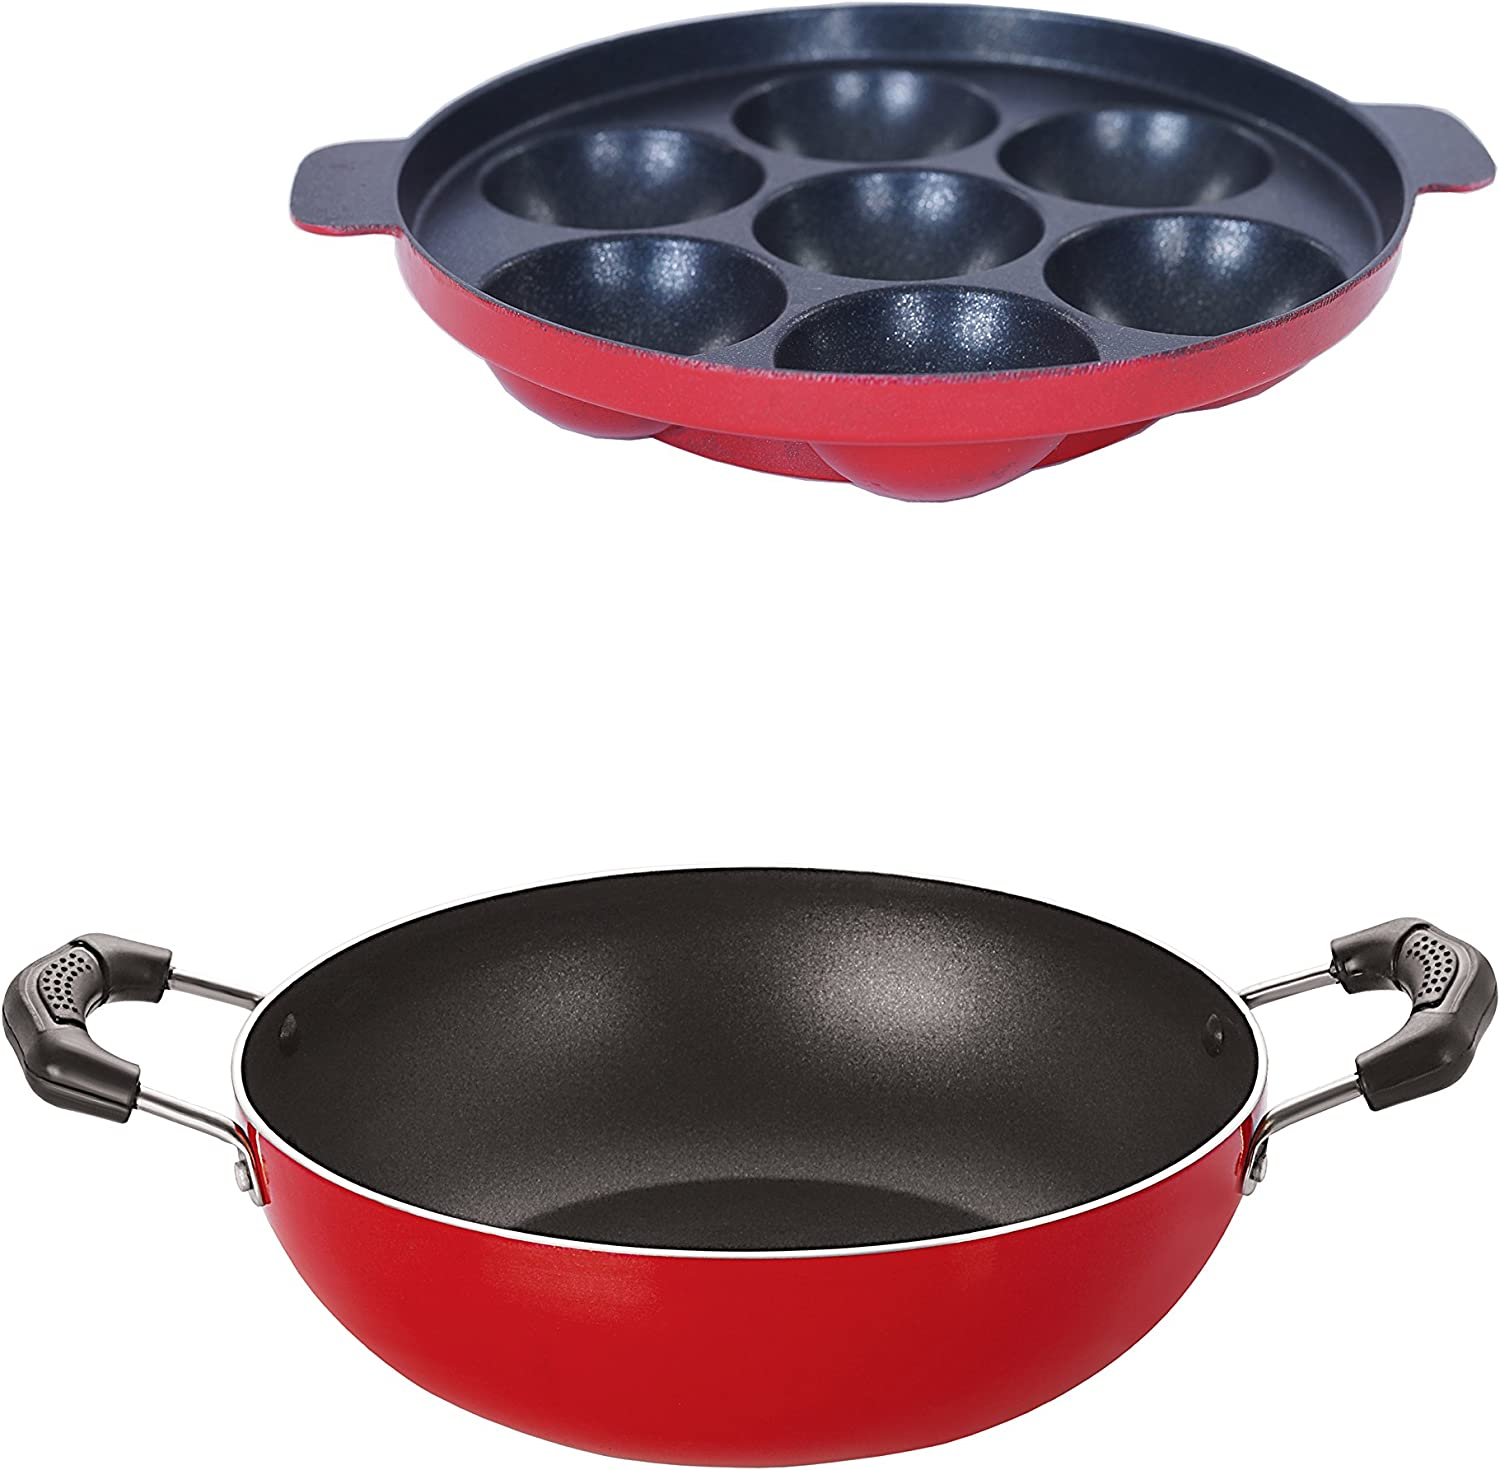 For 411/-(83% Off) Nirlon Non-Stick Aluminium Cookware Set, 2-Pieces, Red (2.6mm_KD11_AP(7)) at Amazon India